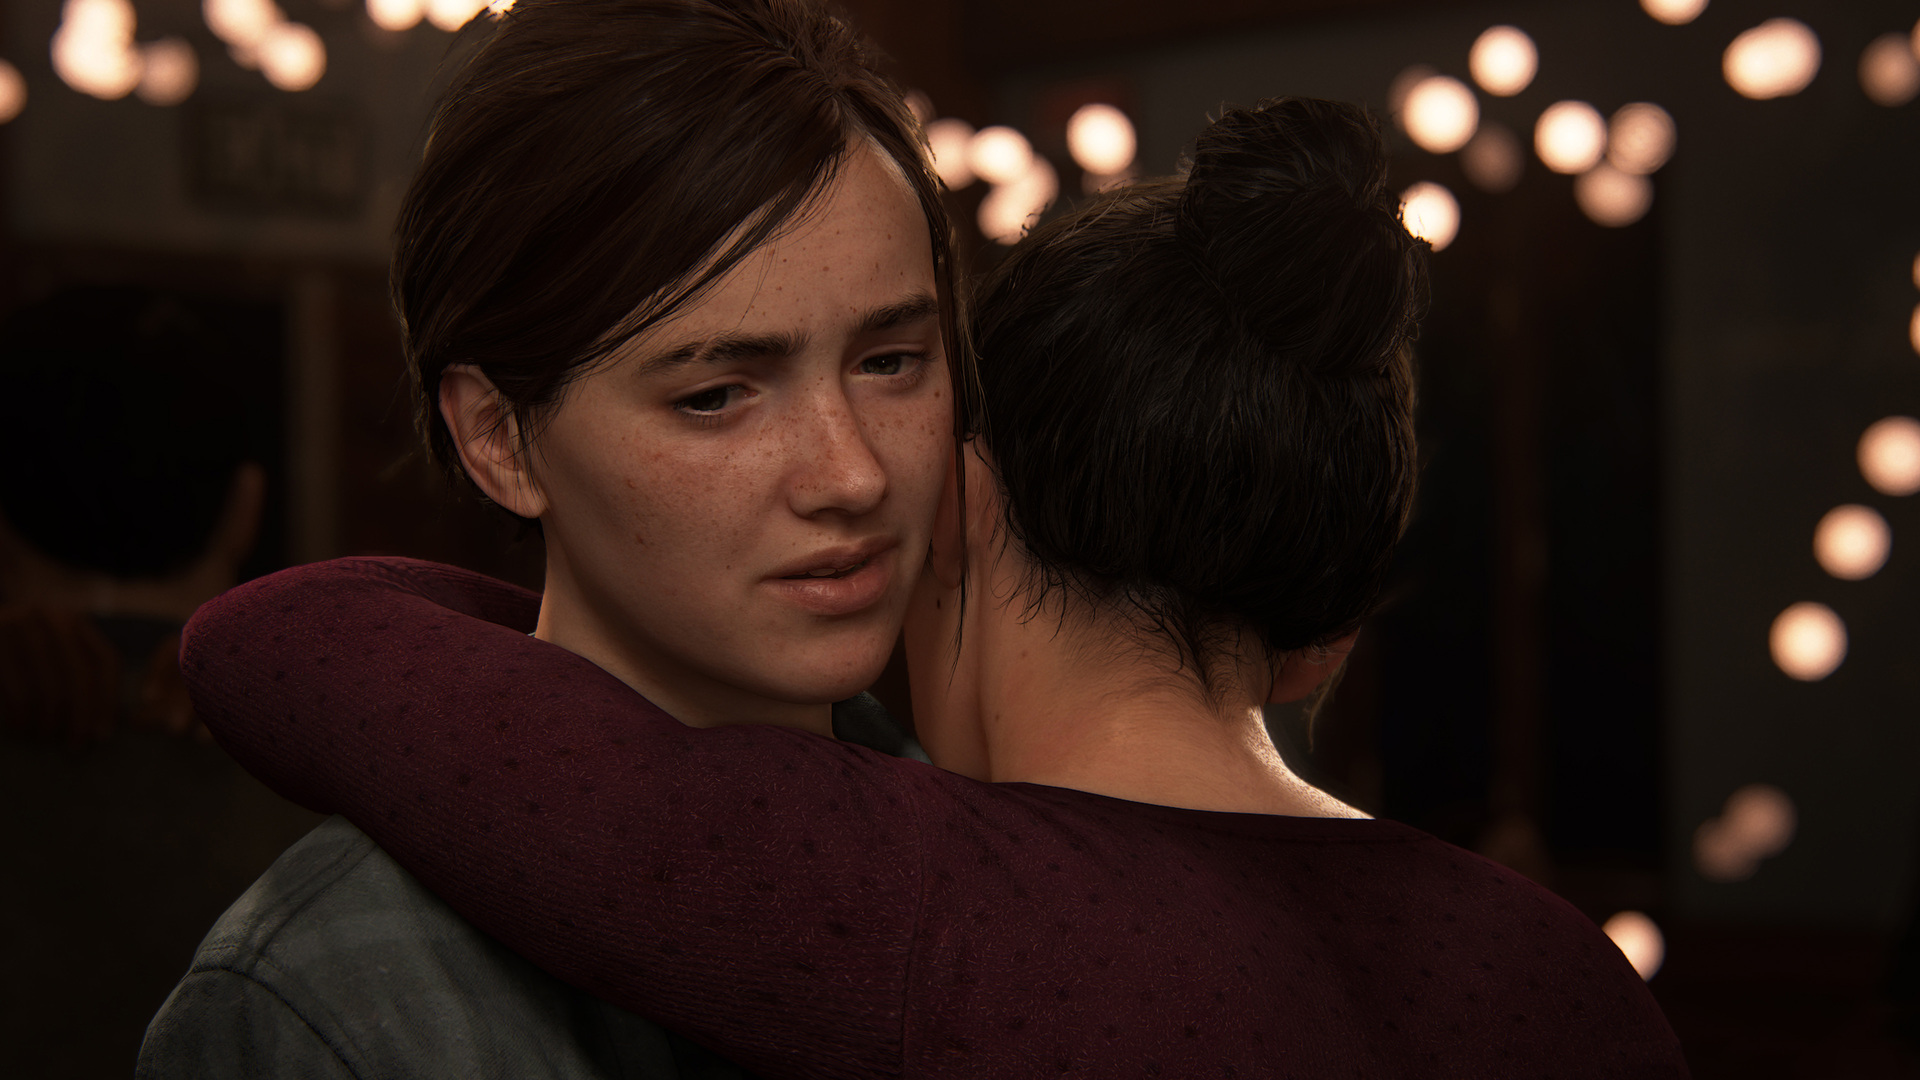 The Last Of Us Part 2 Wallpaper: 1920x1080 The Last Of Us Part 2 2018 Laptop Full HD 1080P